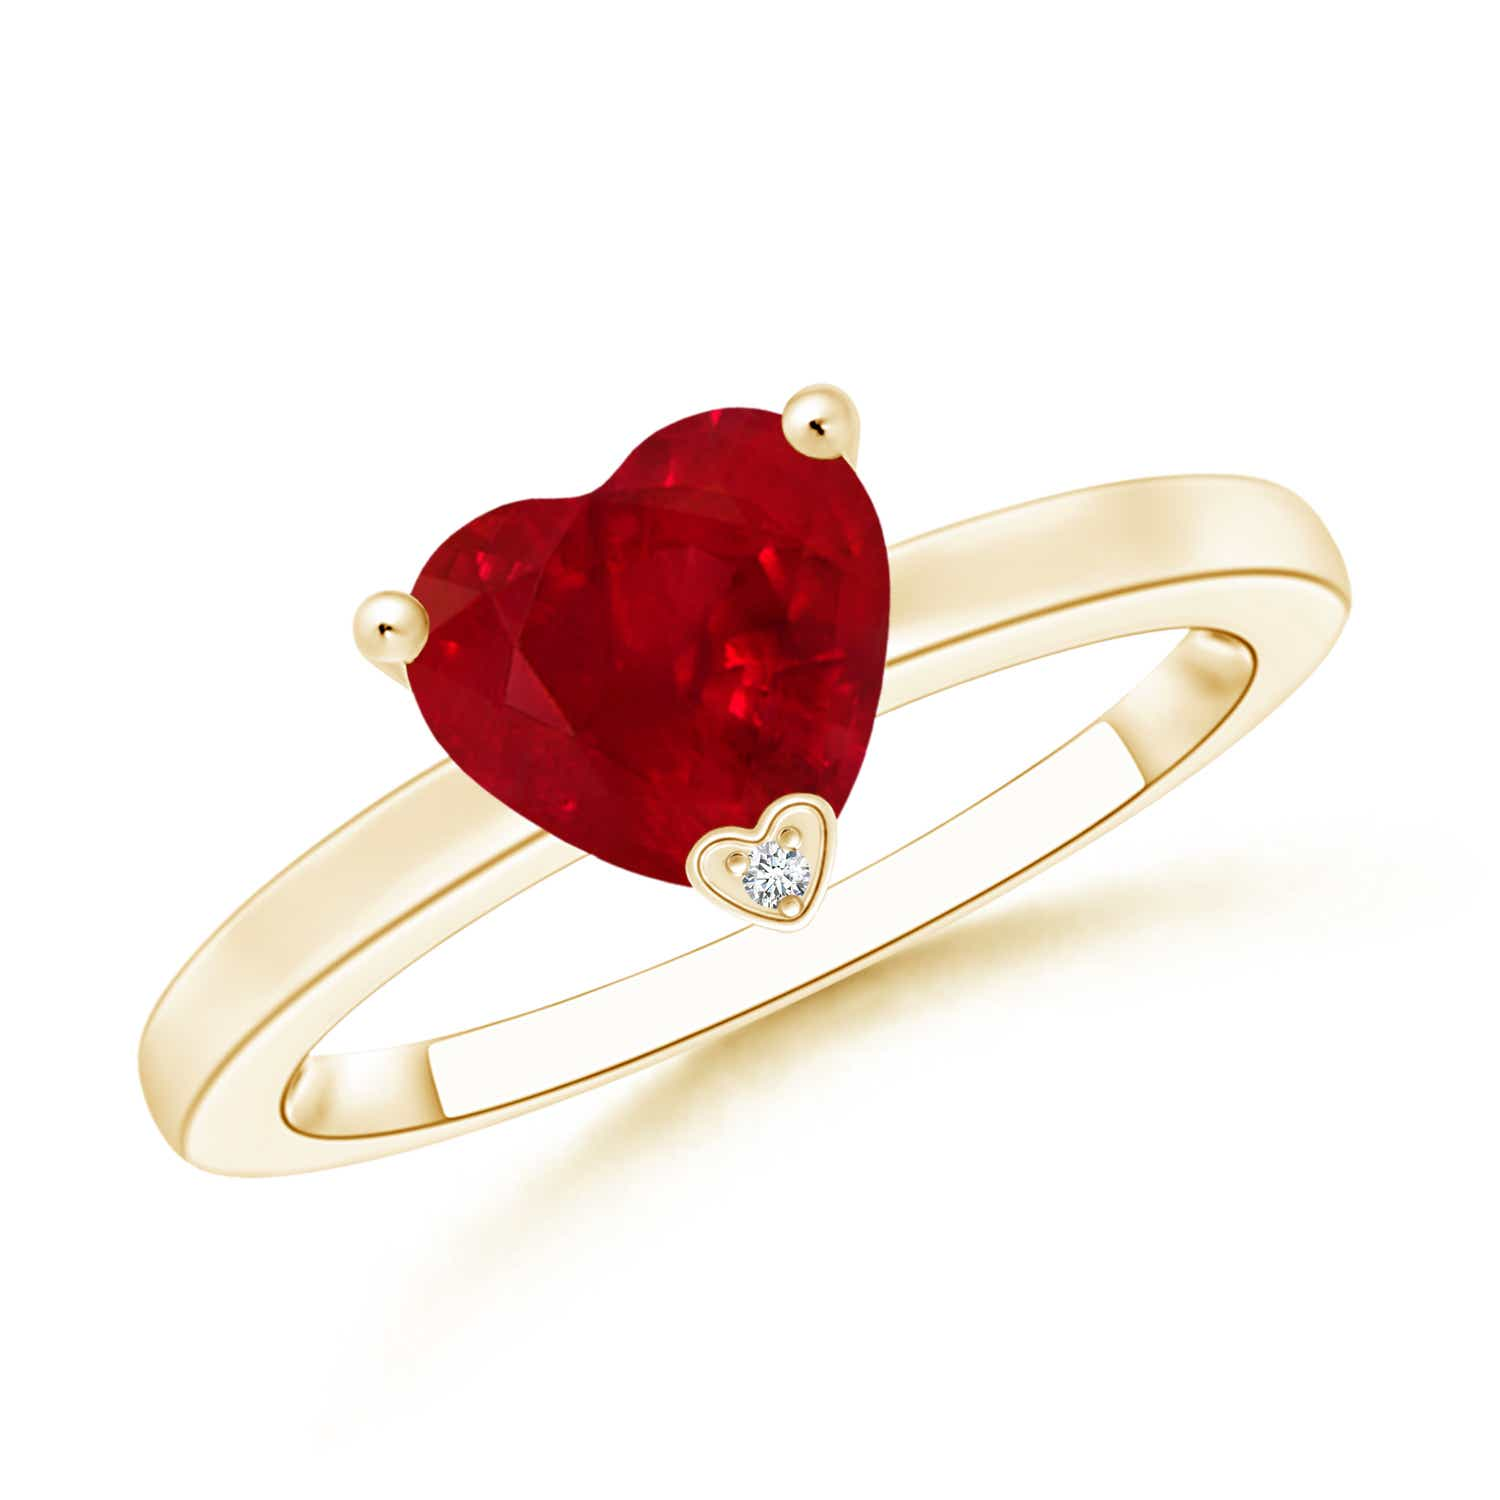 1522c140ce166 Solitaire Heart Shaped Ruby Promise Ring